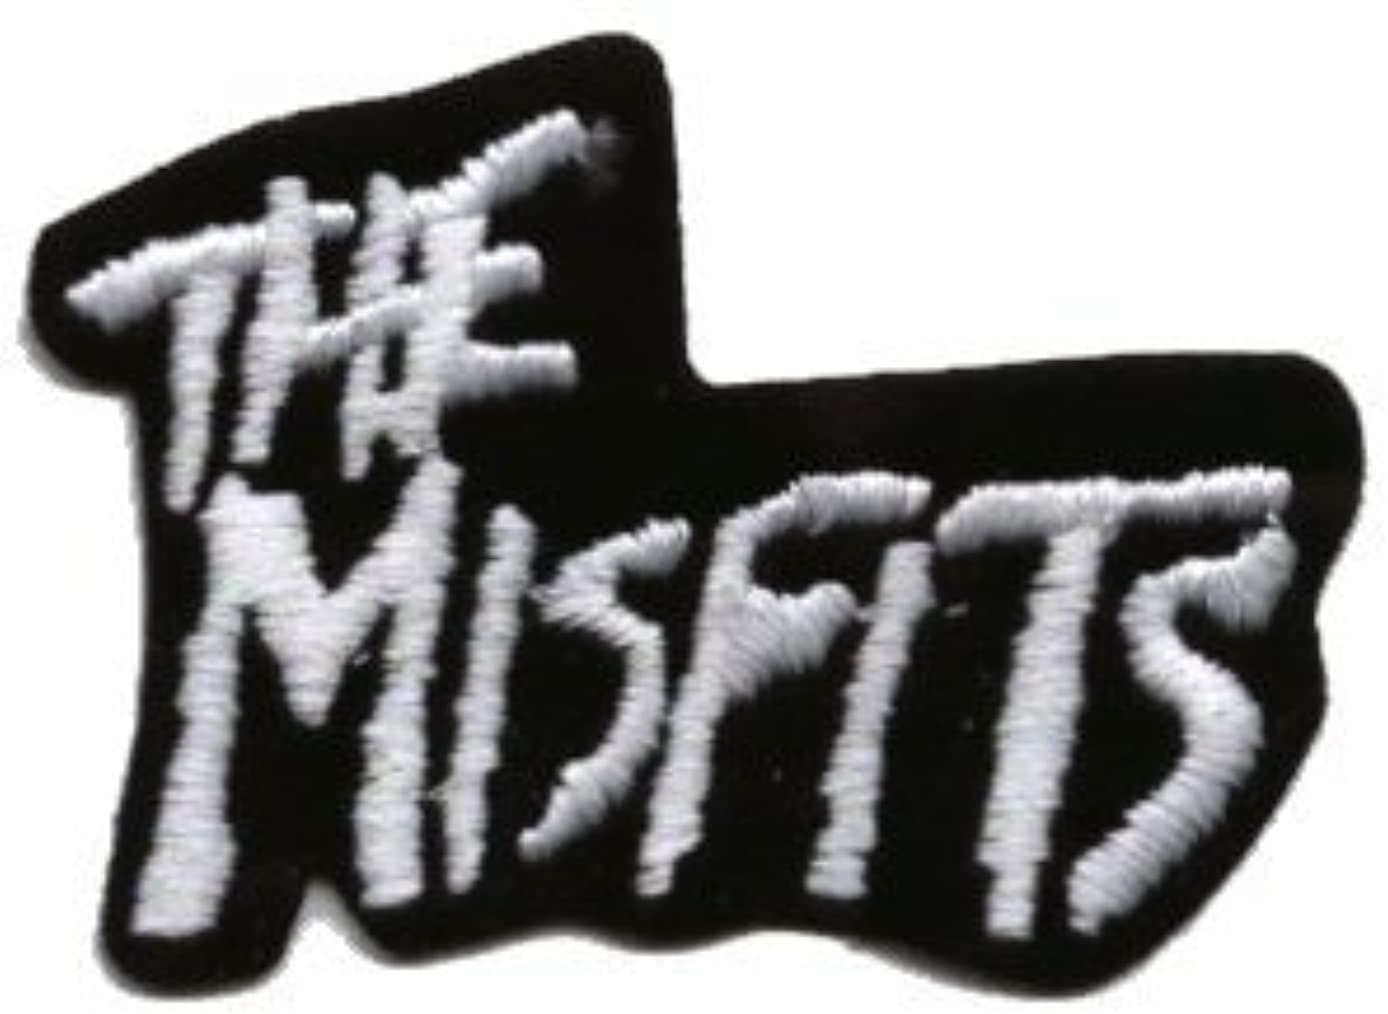 The Misfits - White Logo on Black Background - Embroidered Iron On or Sew On Patch